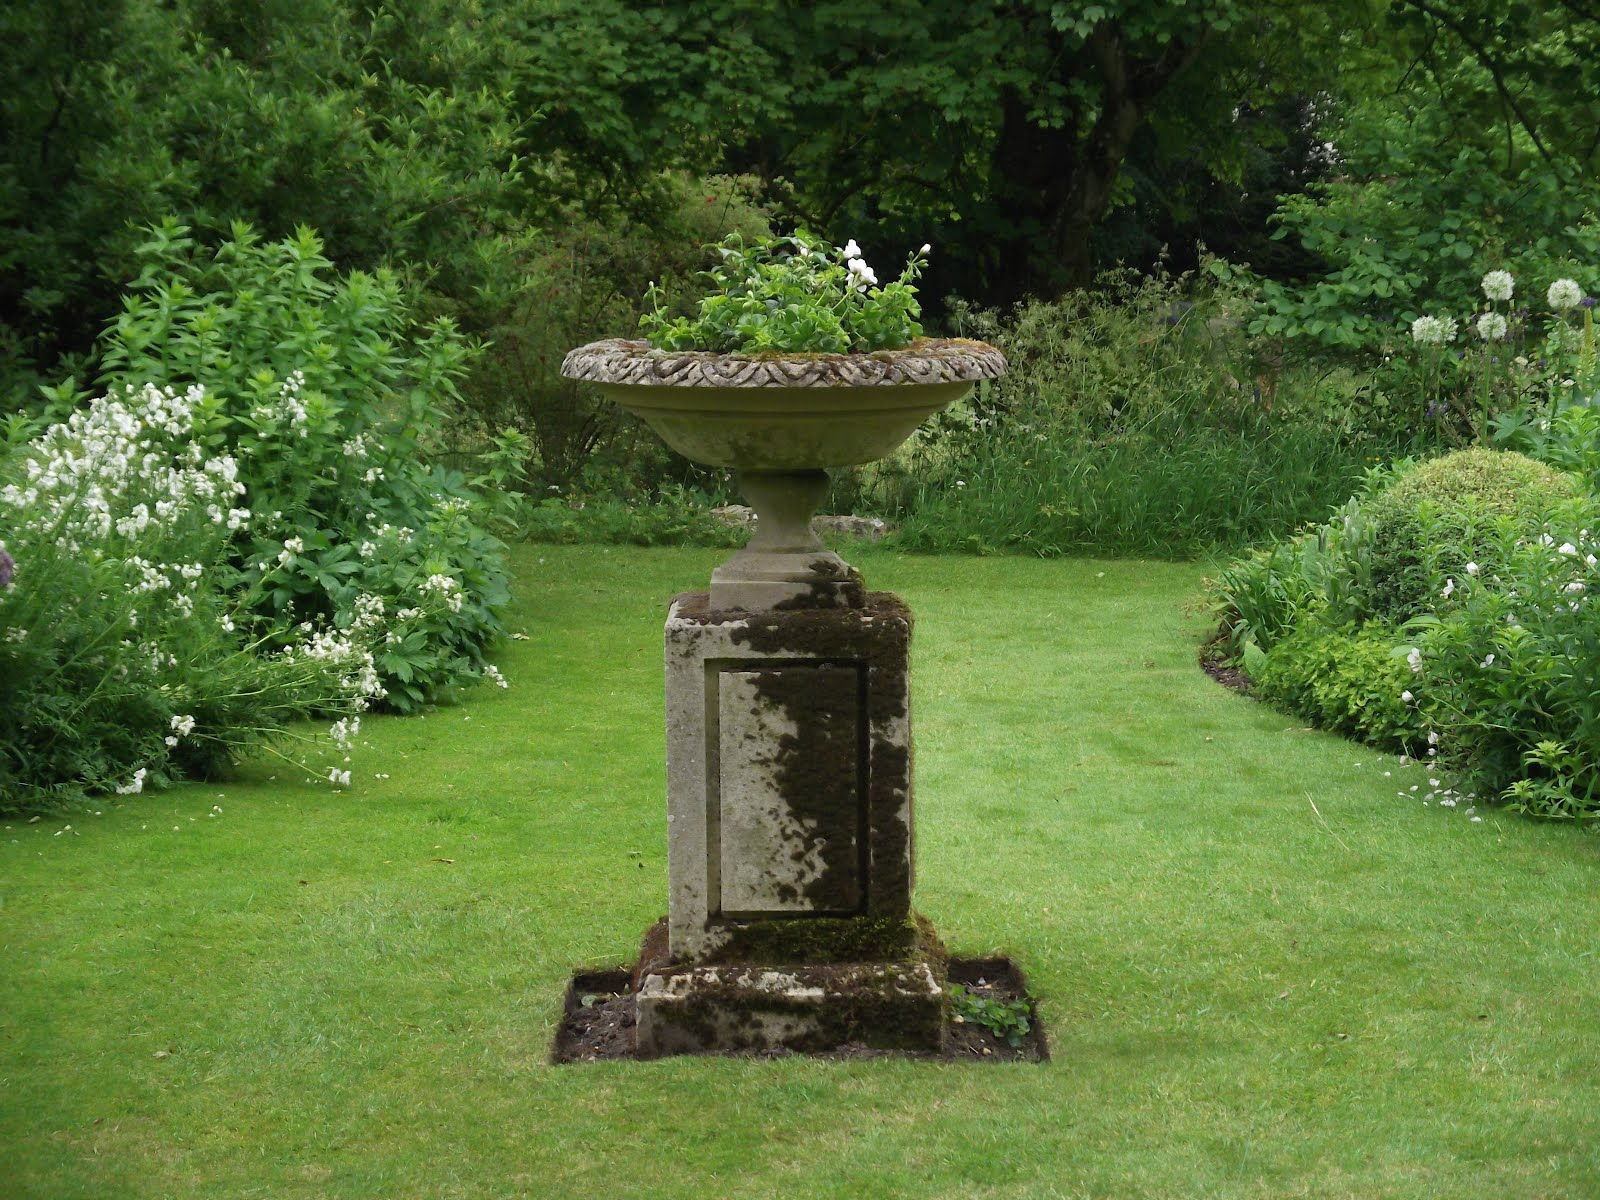 A Tour Of An English Private Country Garden Part 1